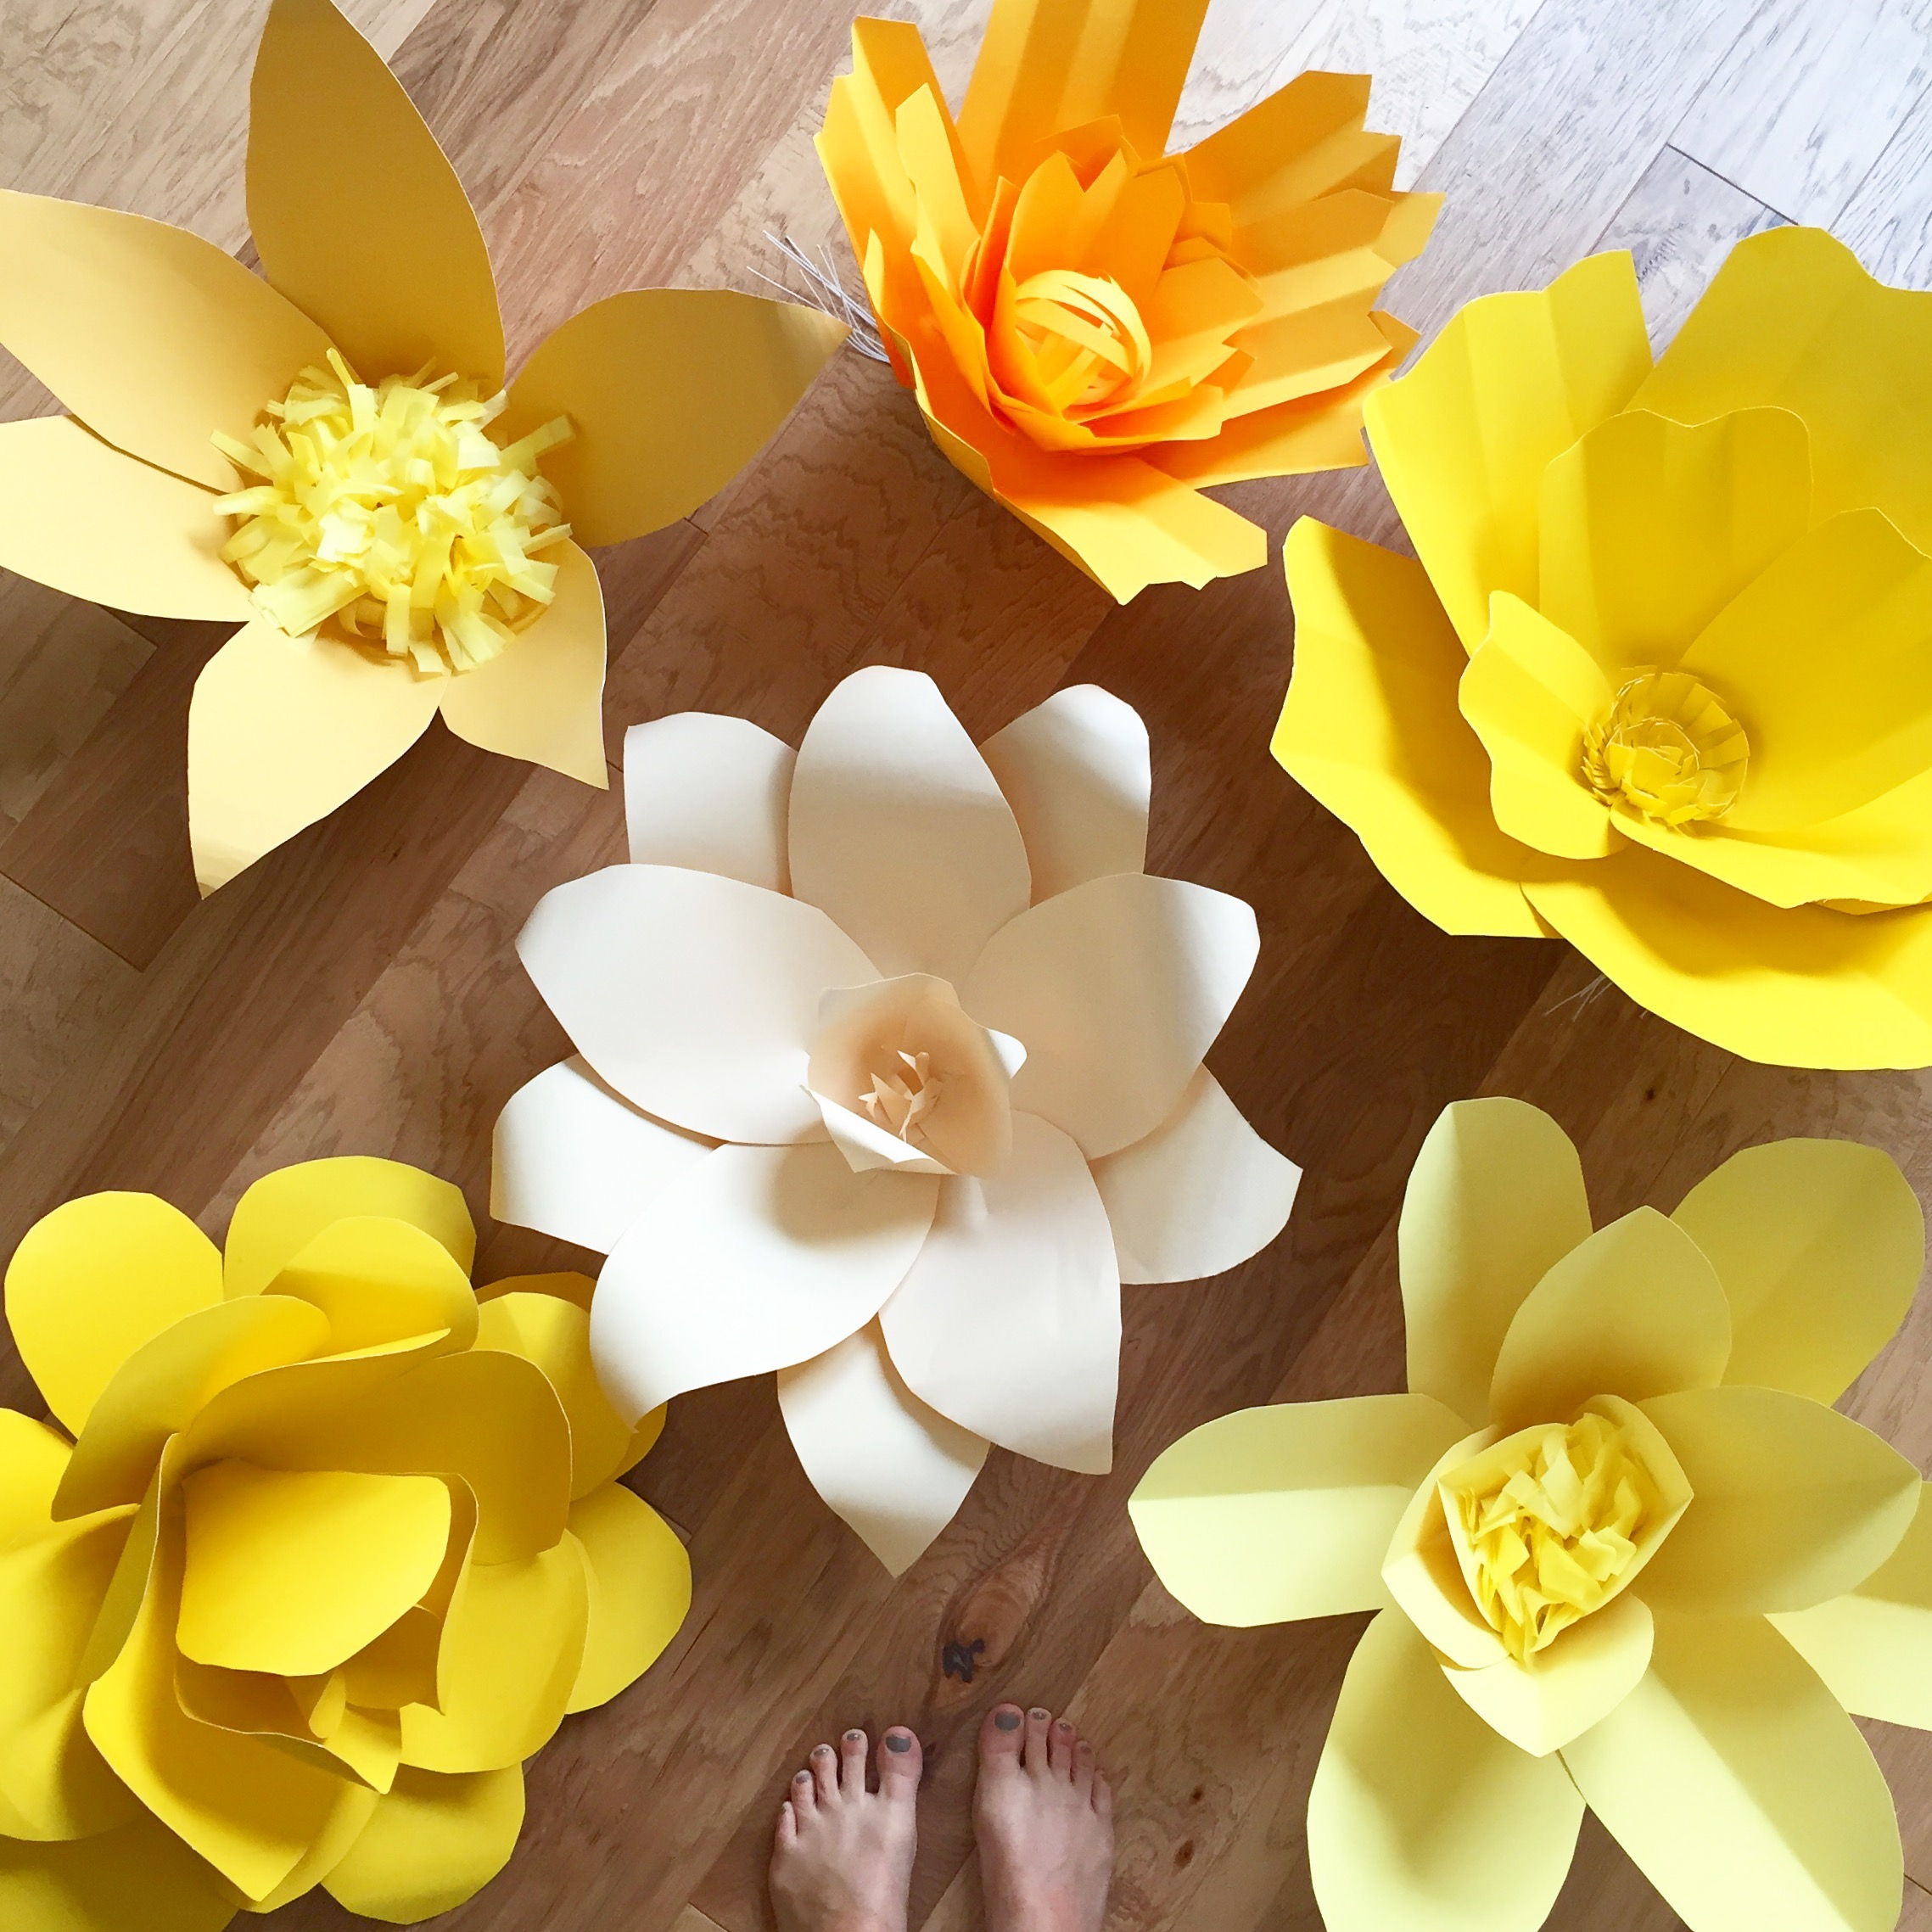 Diy giant paper flower arch live free creative co giant paper flowers one little minute blog mightylinksfo